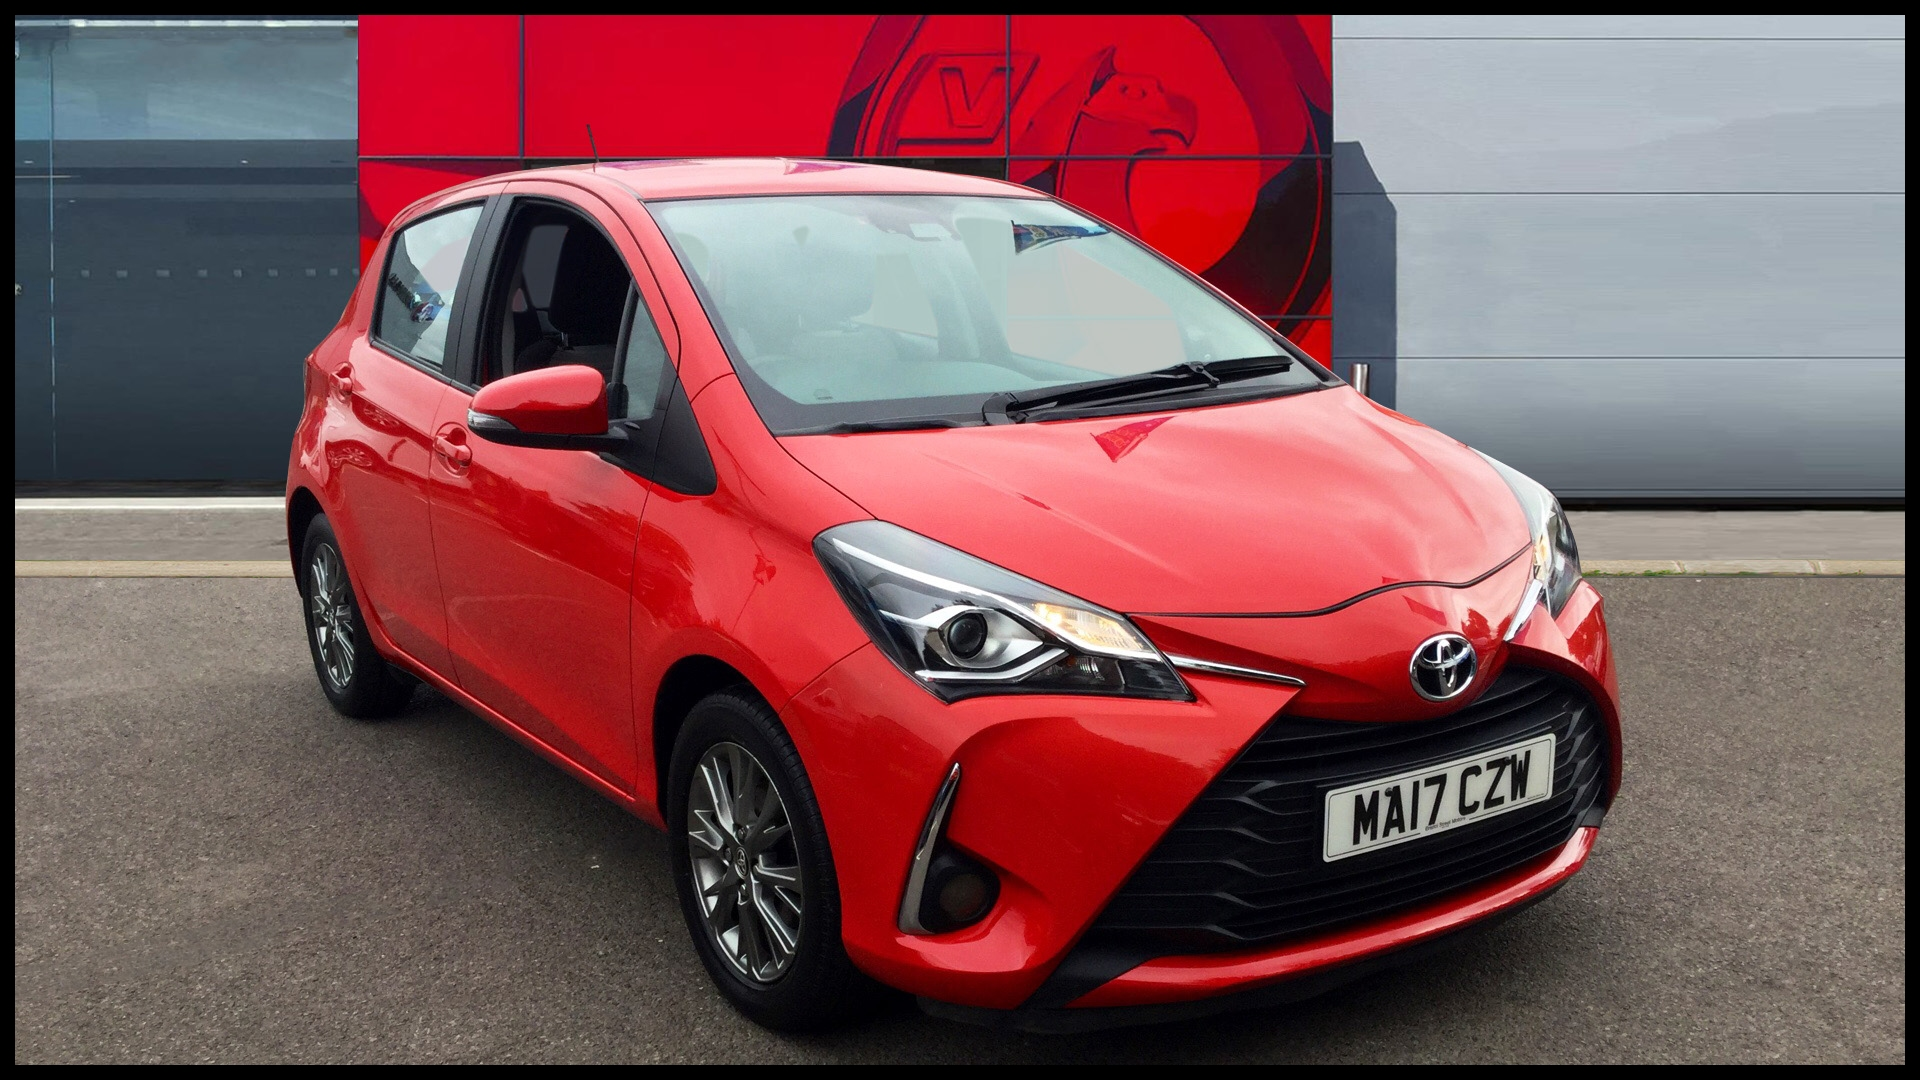 Used Toyota Yaris Cars for Sale in Manchester Greater Manchester